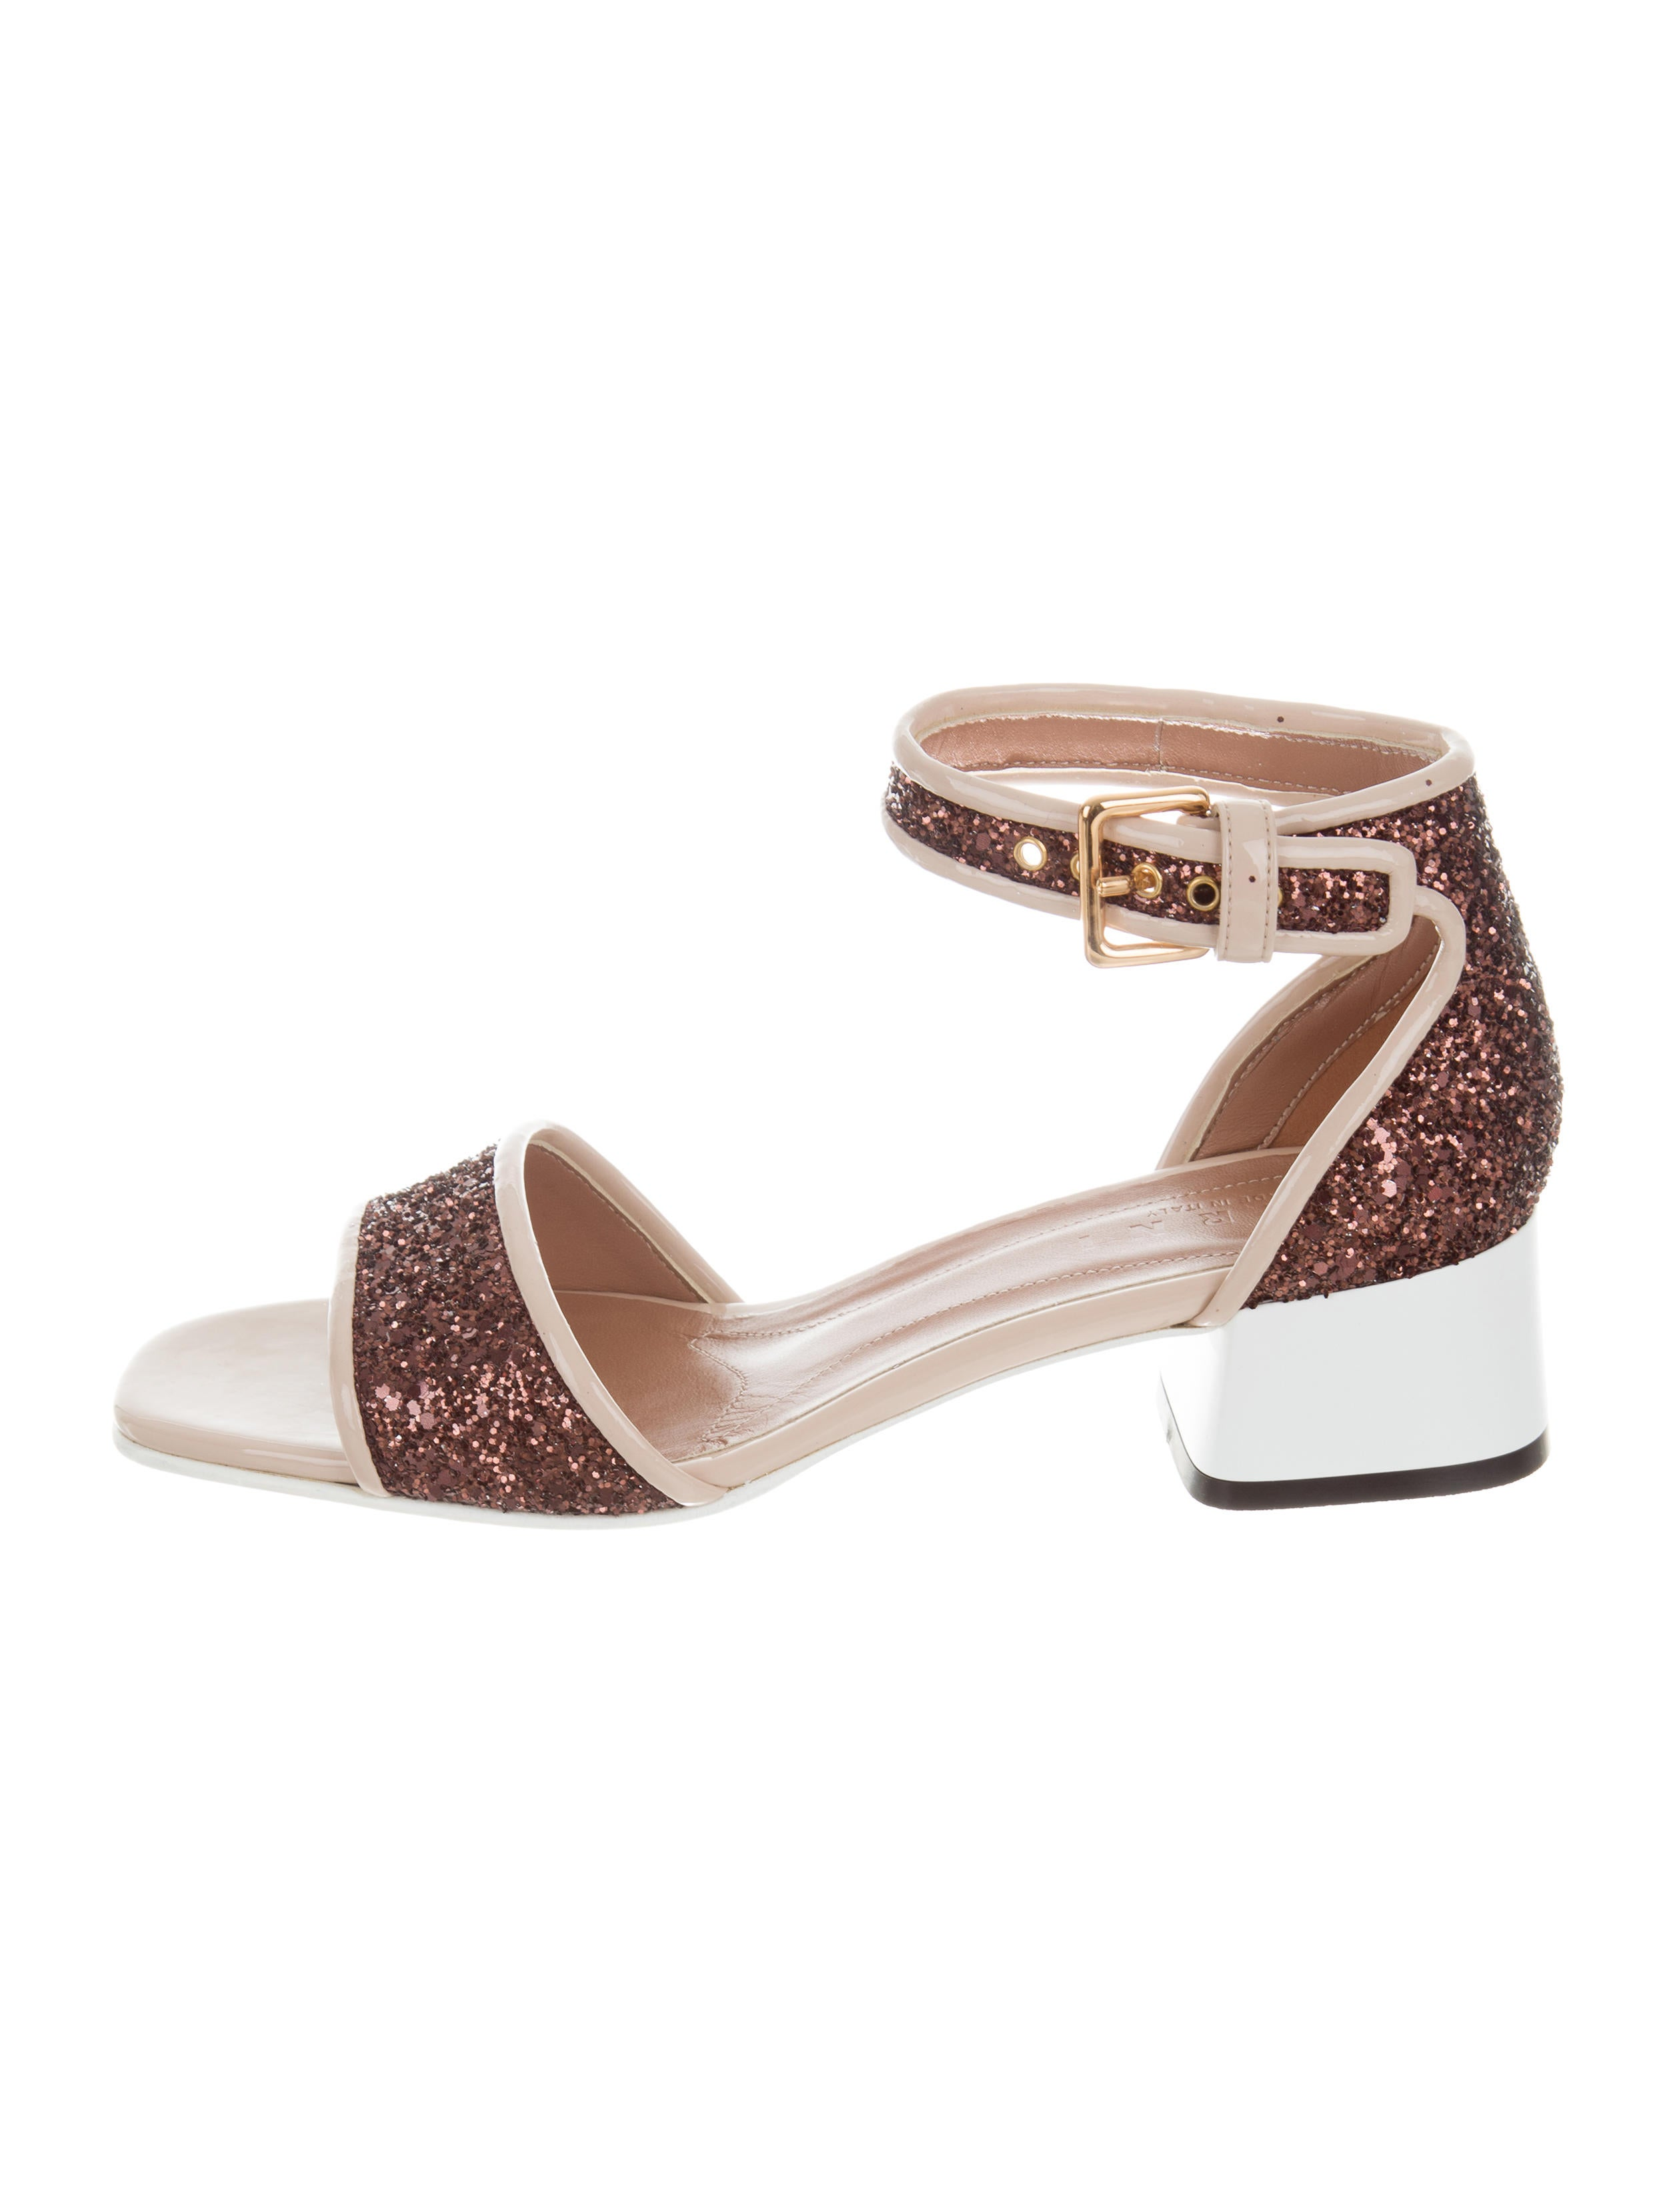 Marni Glitter Block Heel Sandals with paypal cheap online buy cheap collections oCT2i8u